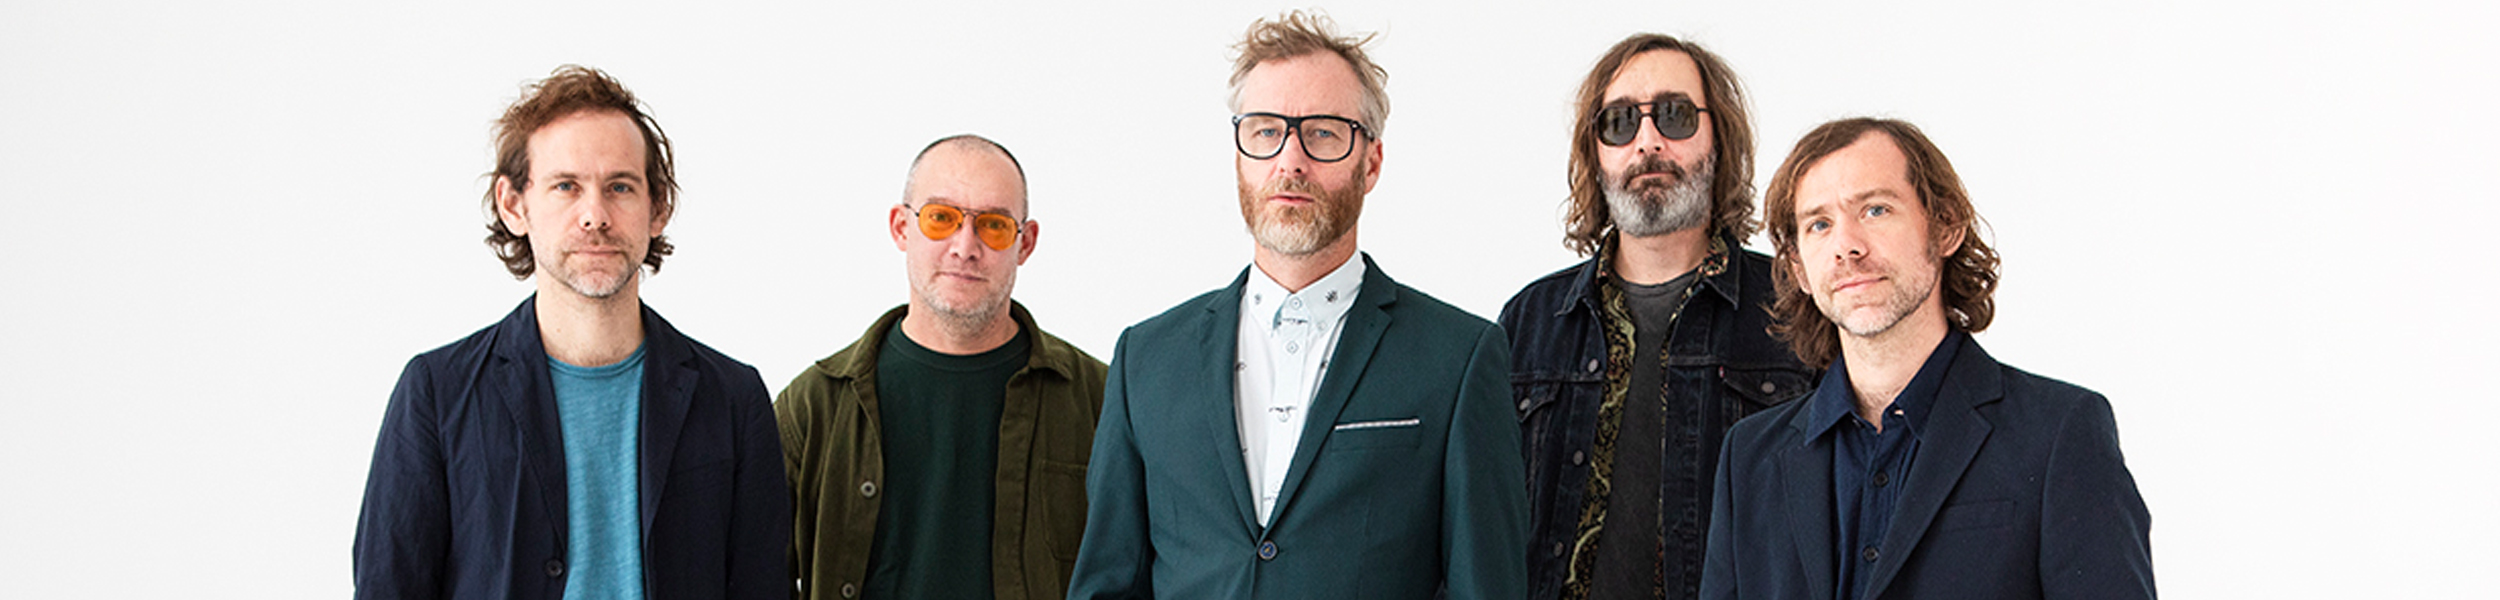 The National - Announce New Live Performance Film & EP